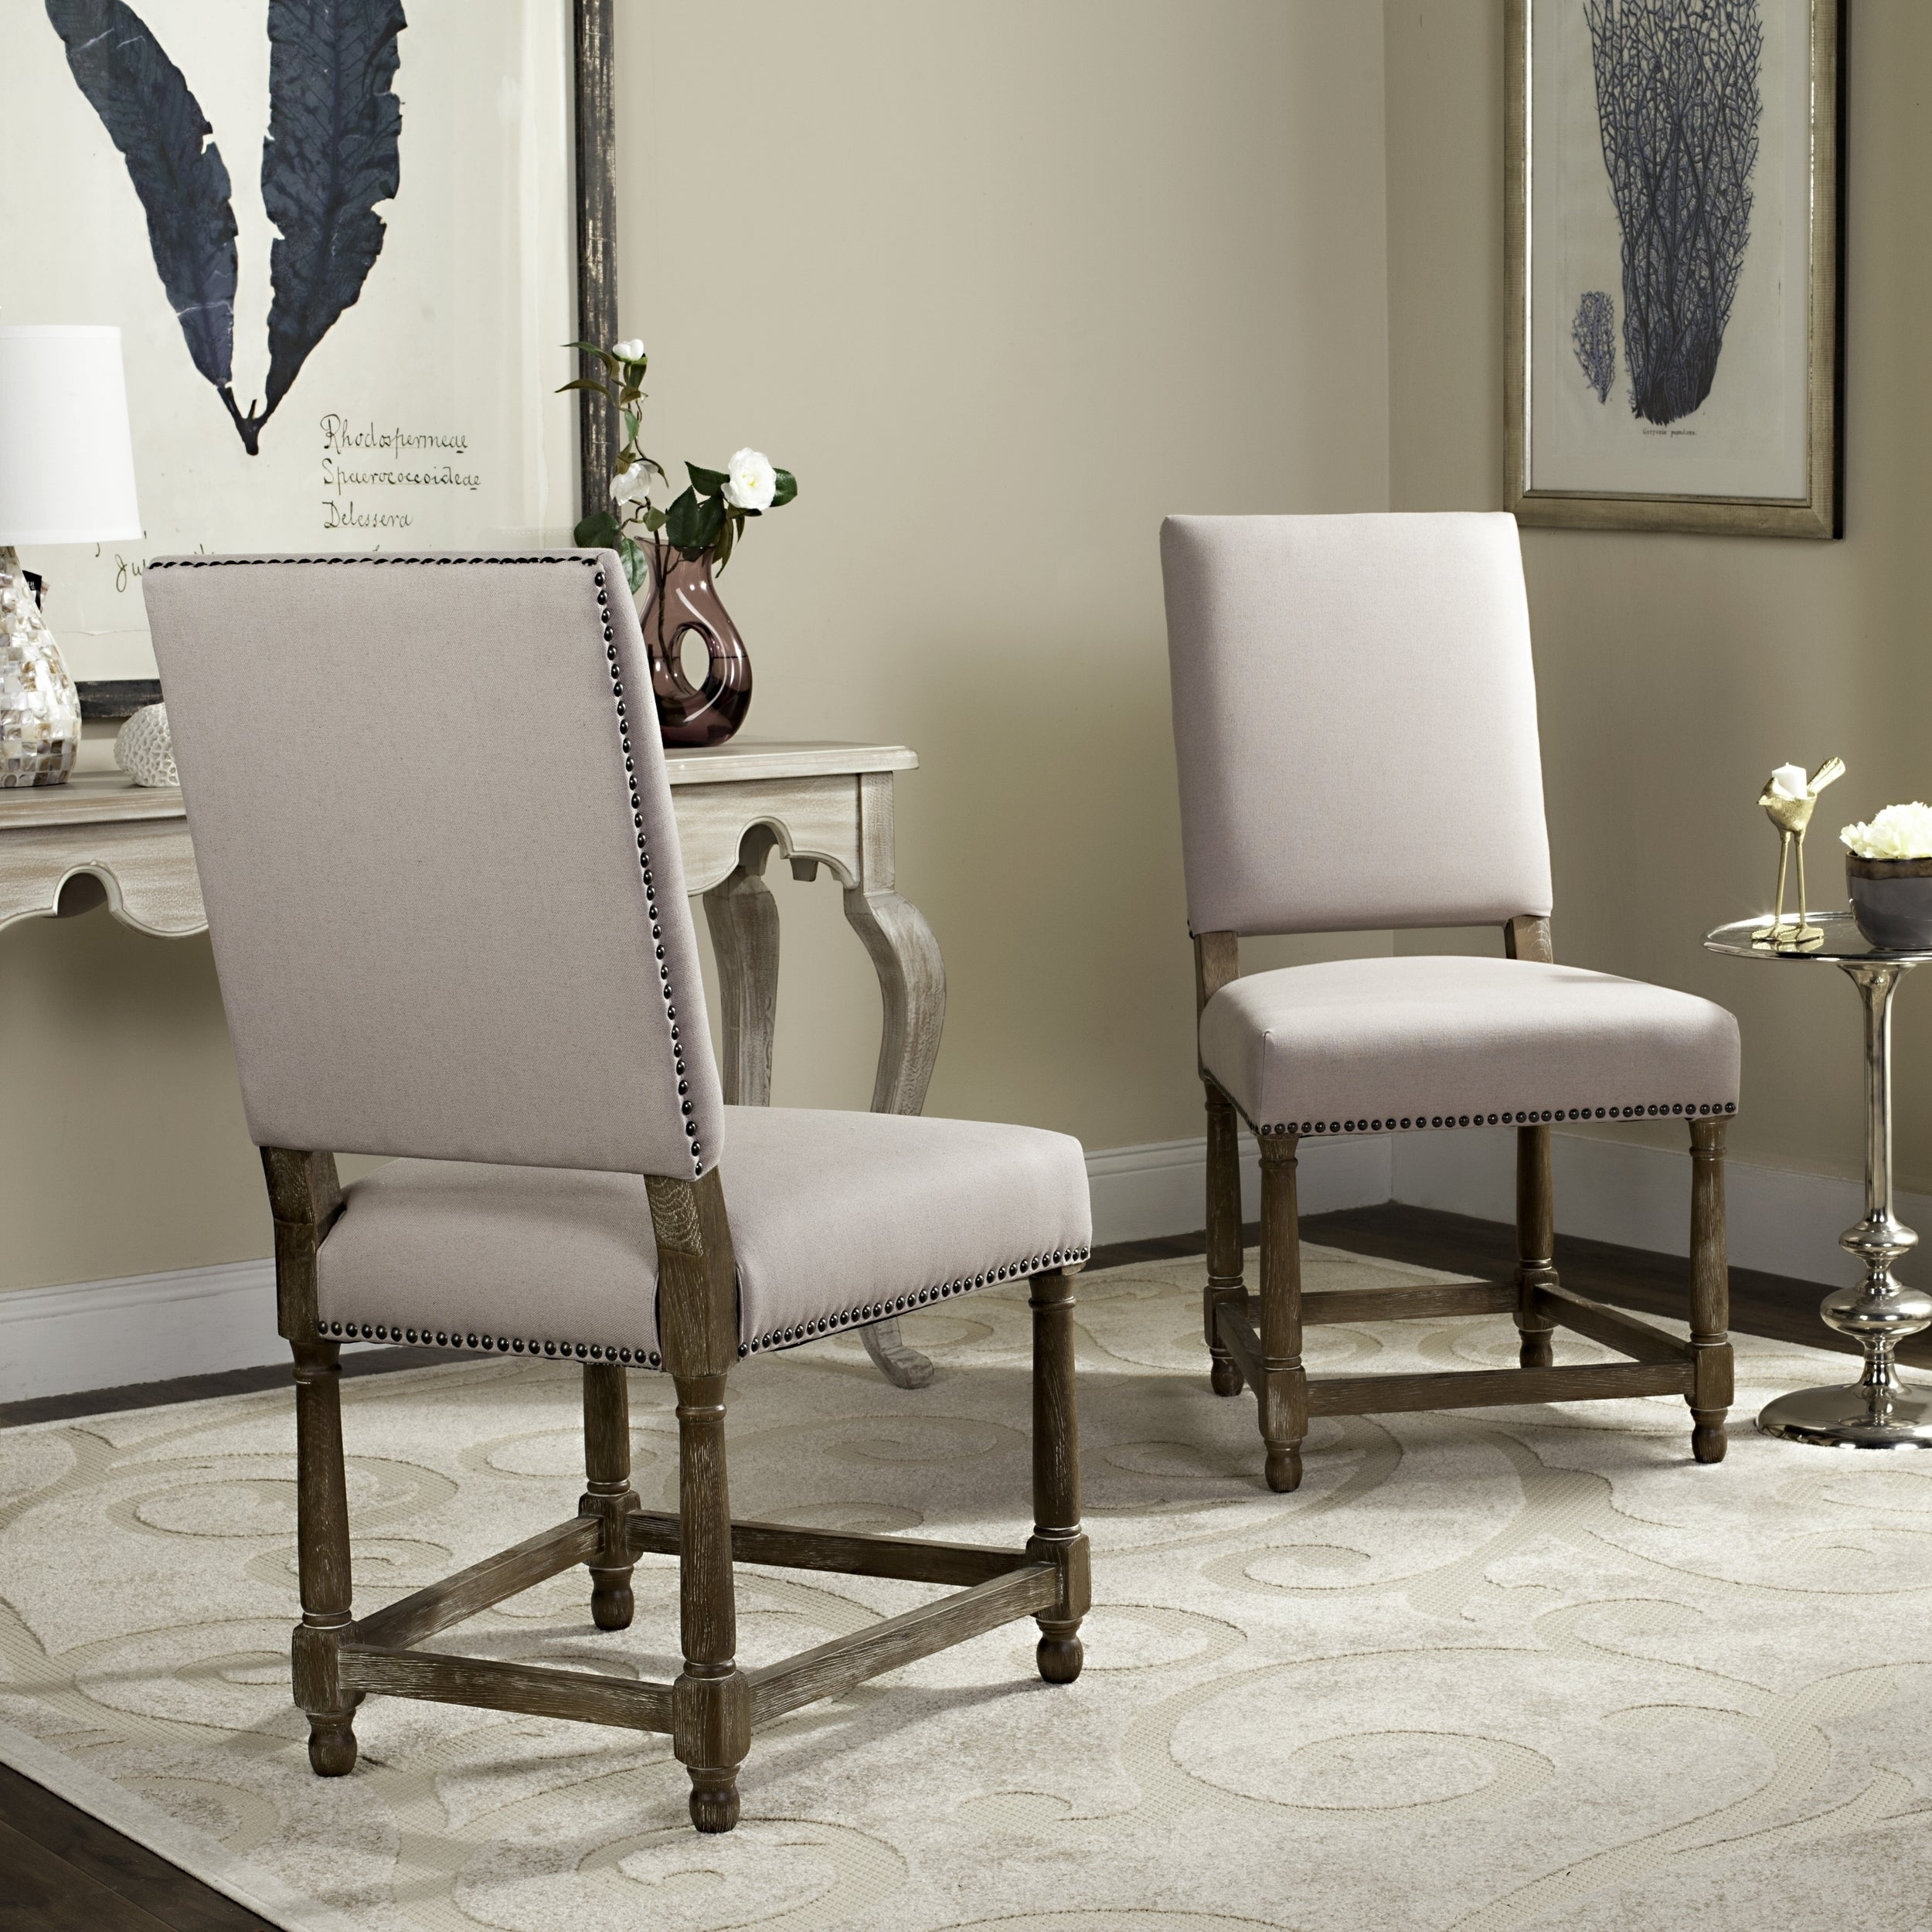 Outstanding Safavieh Old World Dining Bexley Beige Linen Nailhead Dining Chairs Set Of 2 Bralicious Painted Fabric Chair Ideas Braliciousco